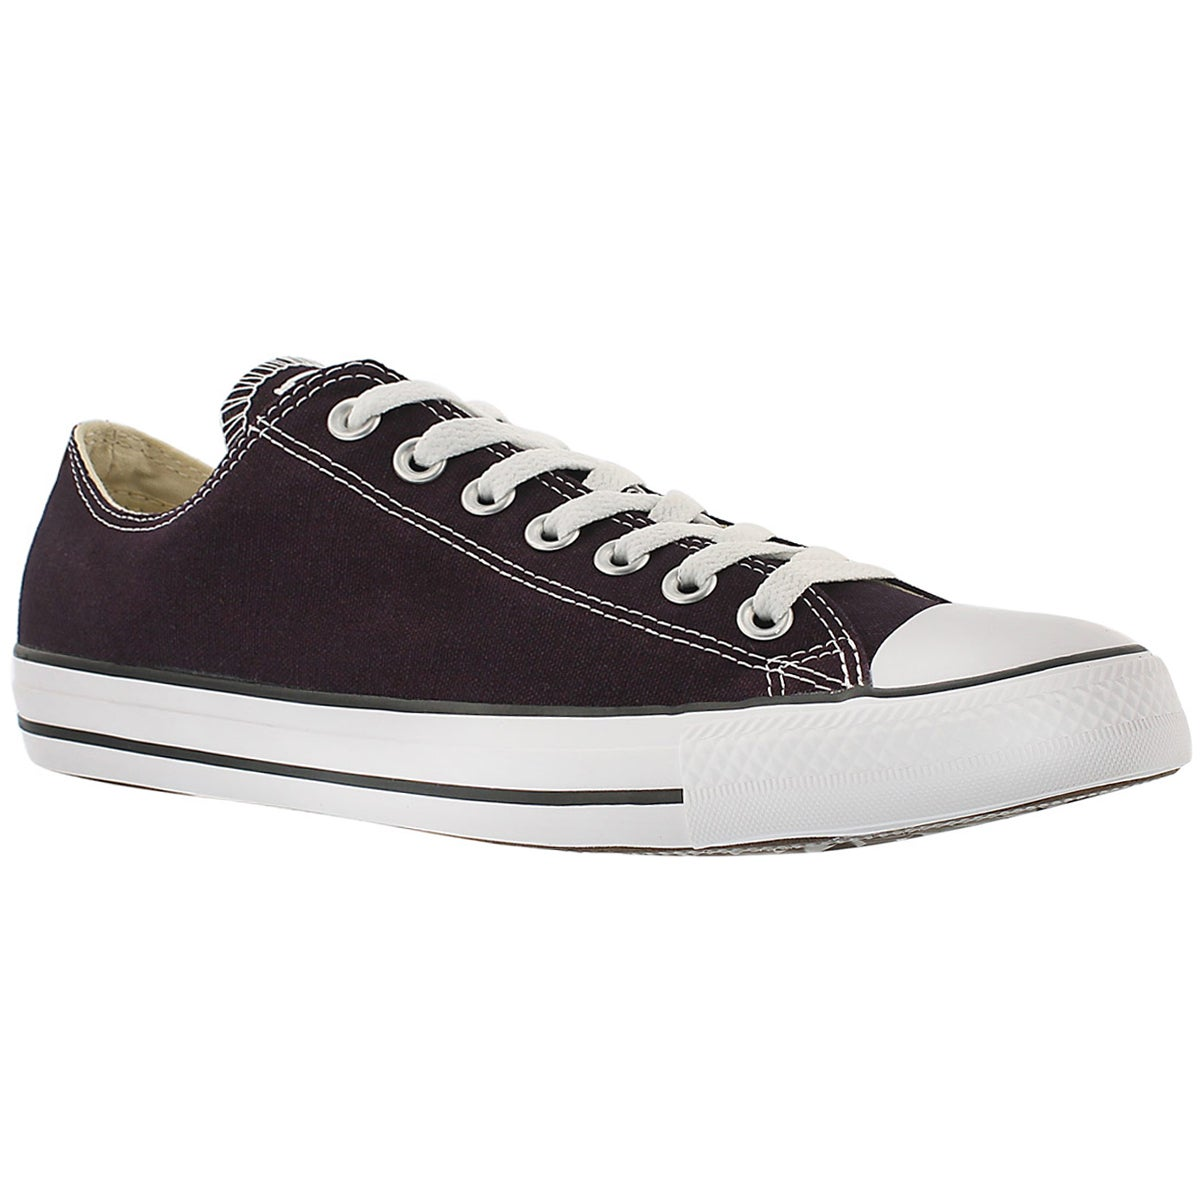 Men's CT ALL STAR SEASONAL CANVAS blk/chy sneakers